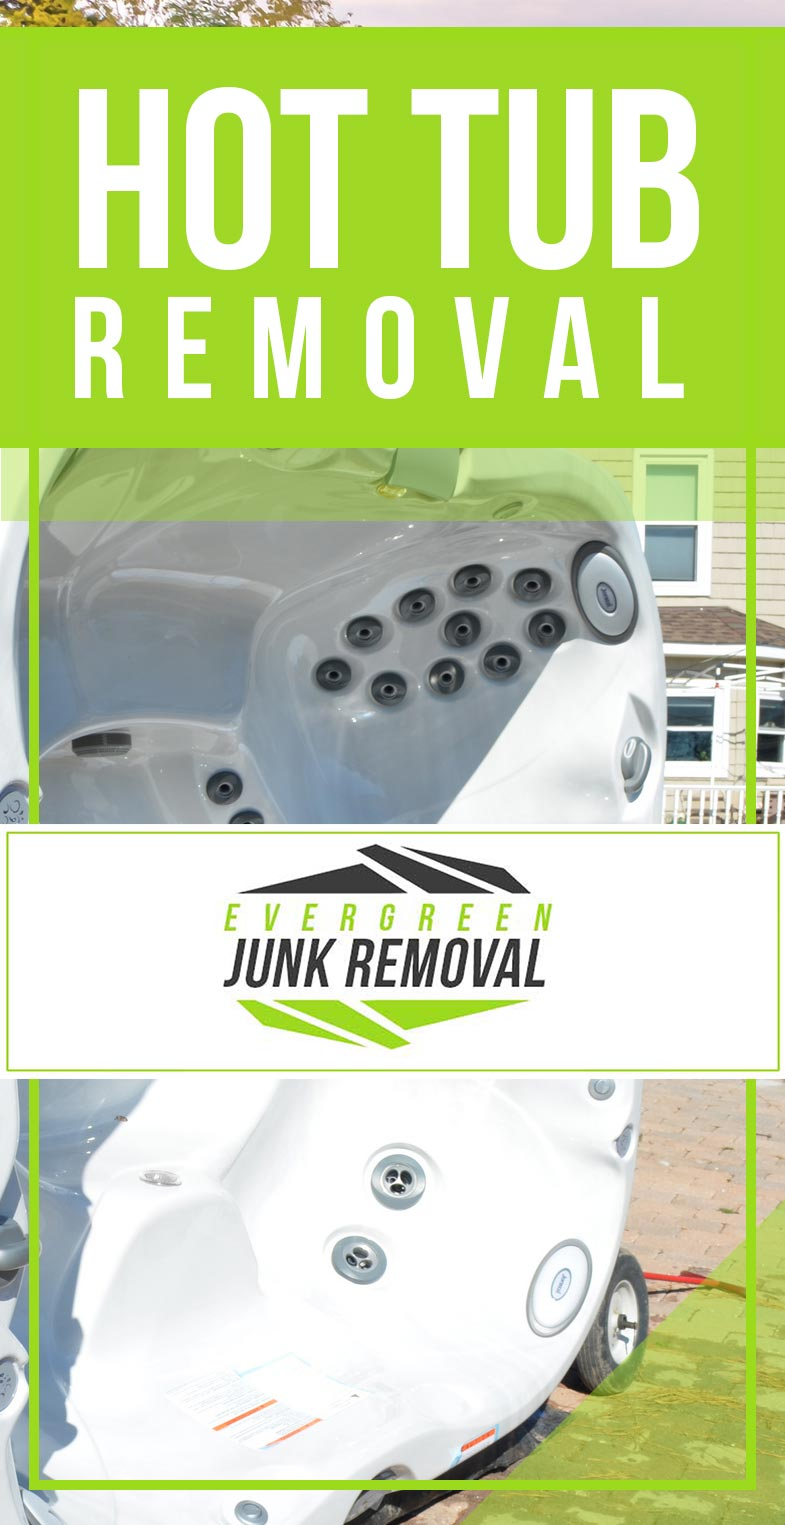 Greenwood Village Hot Tub Removal